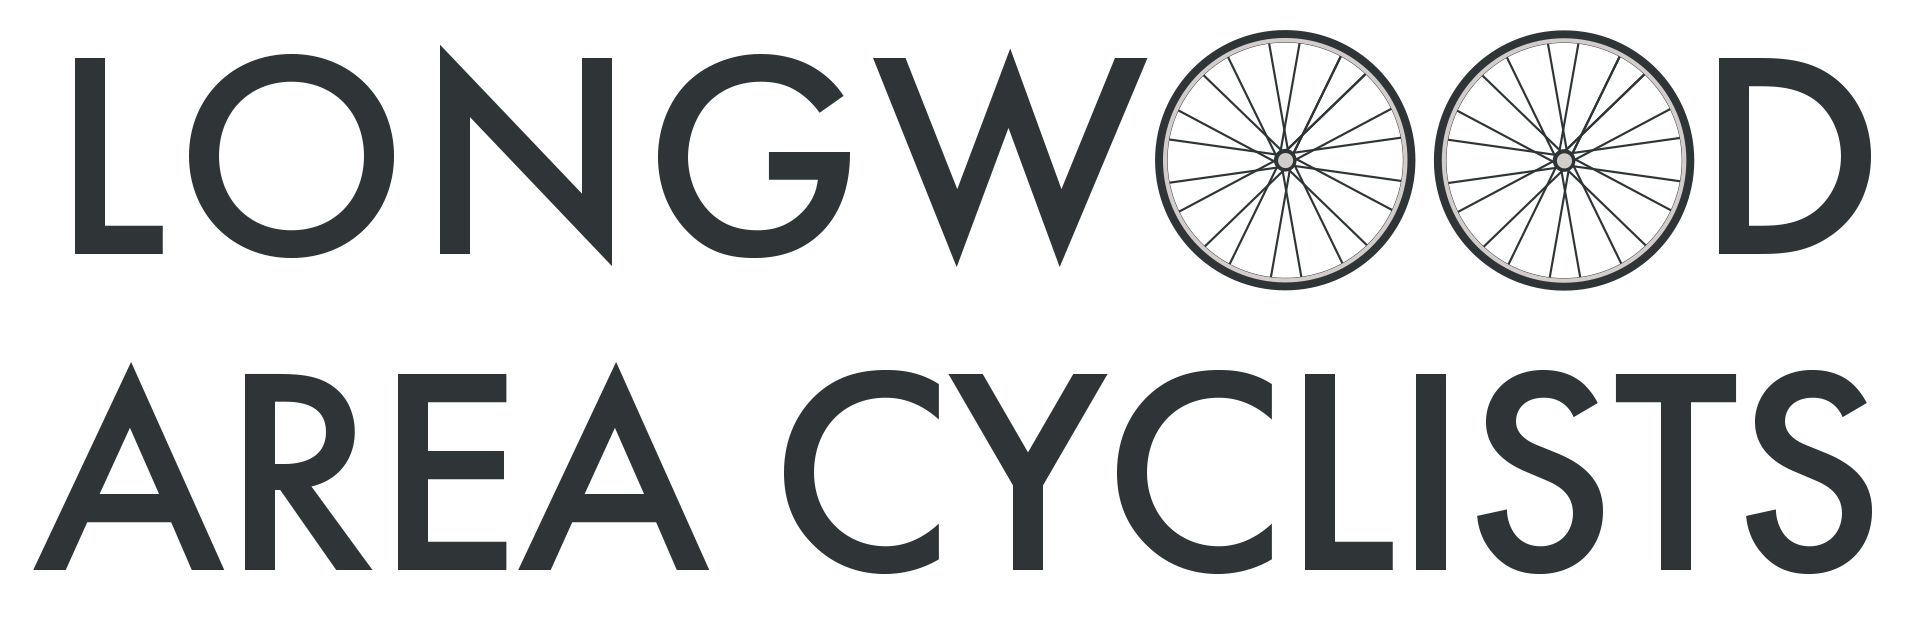 Longwood_Area_Cyclists_Logo_(1).png